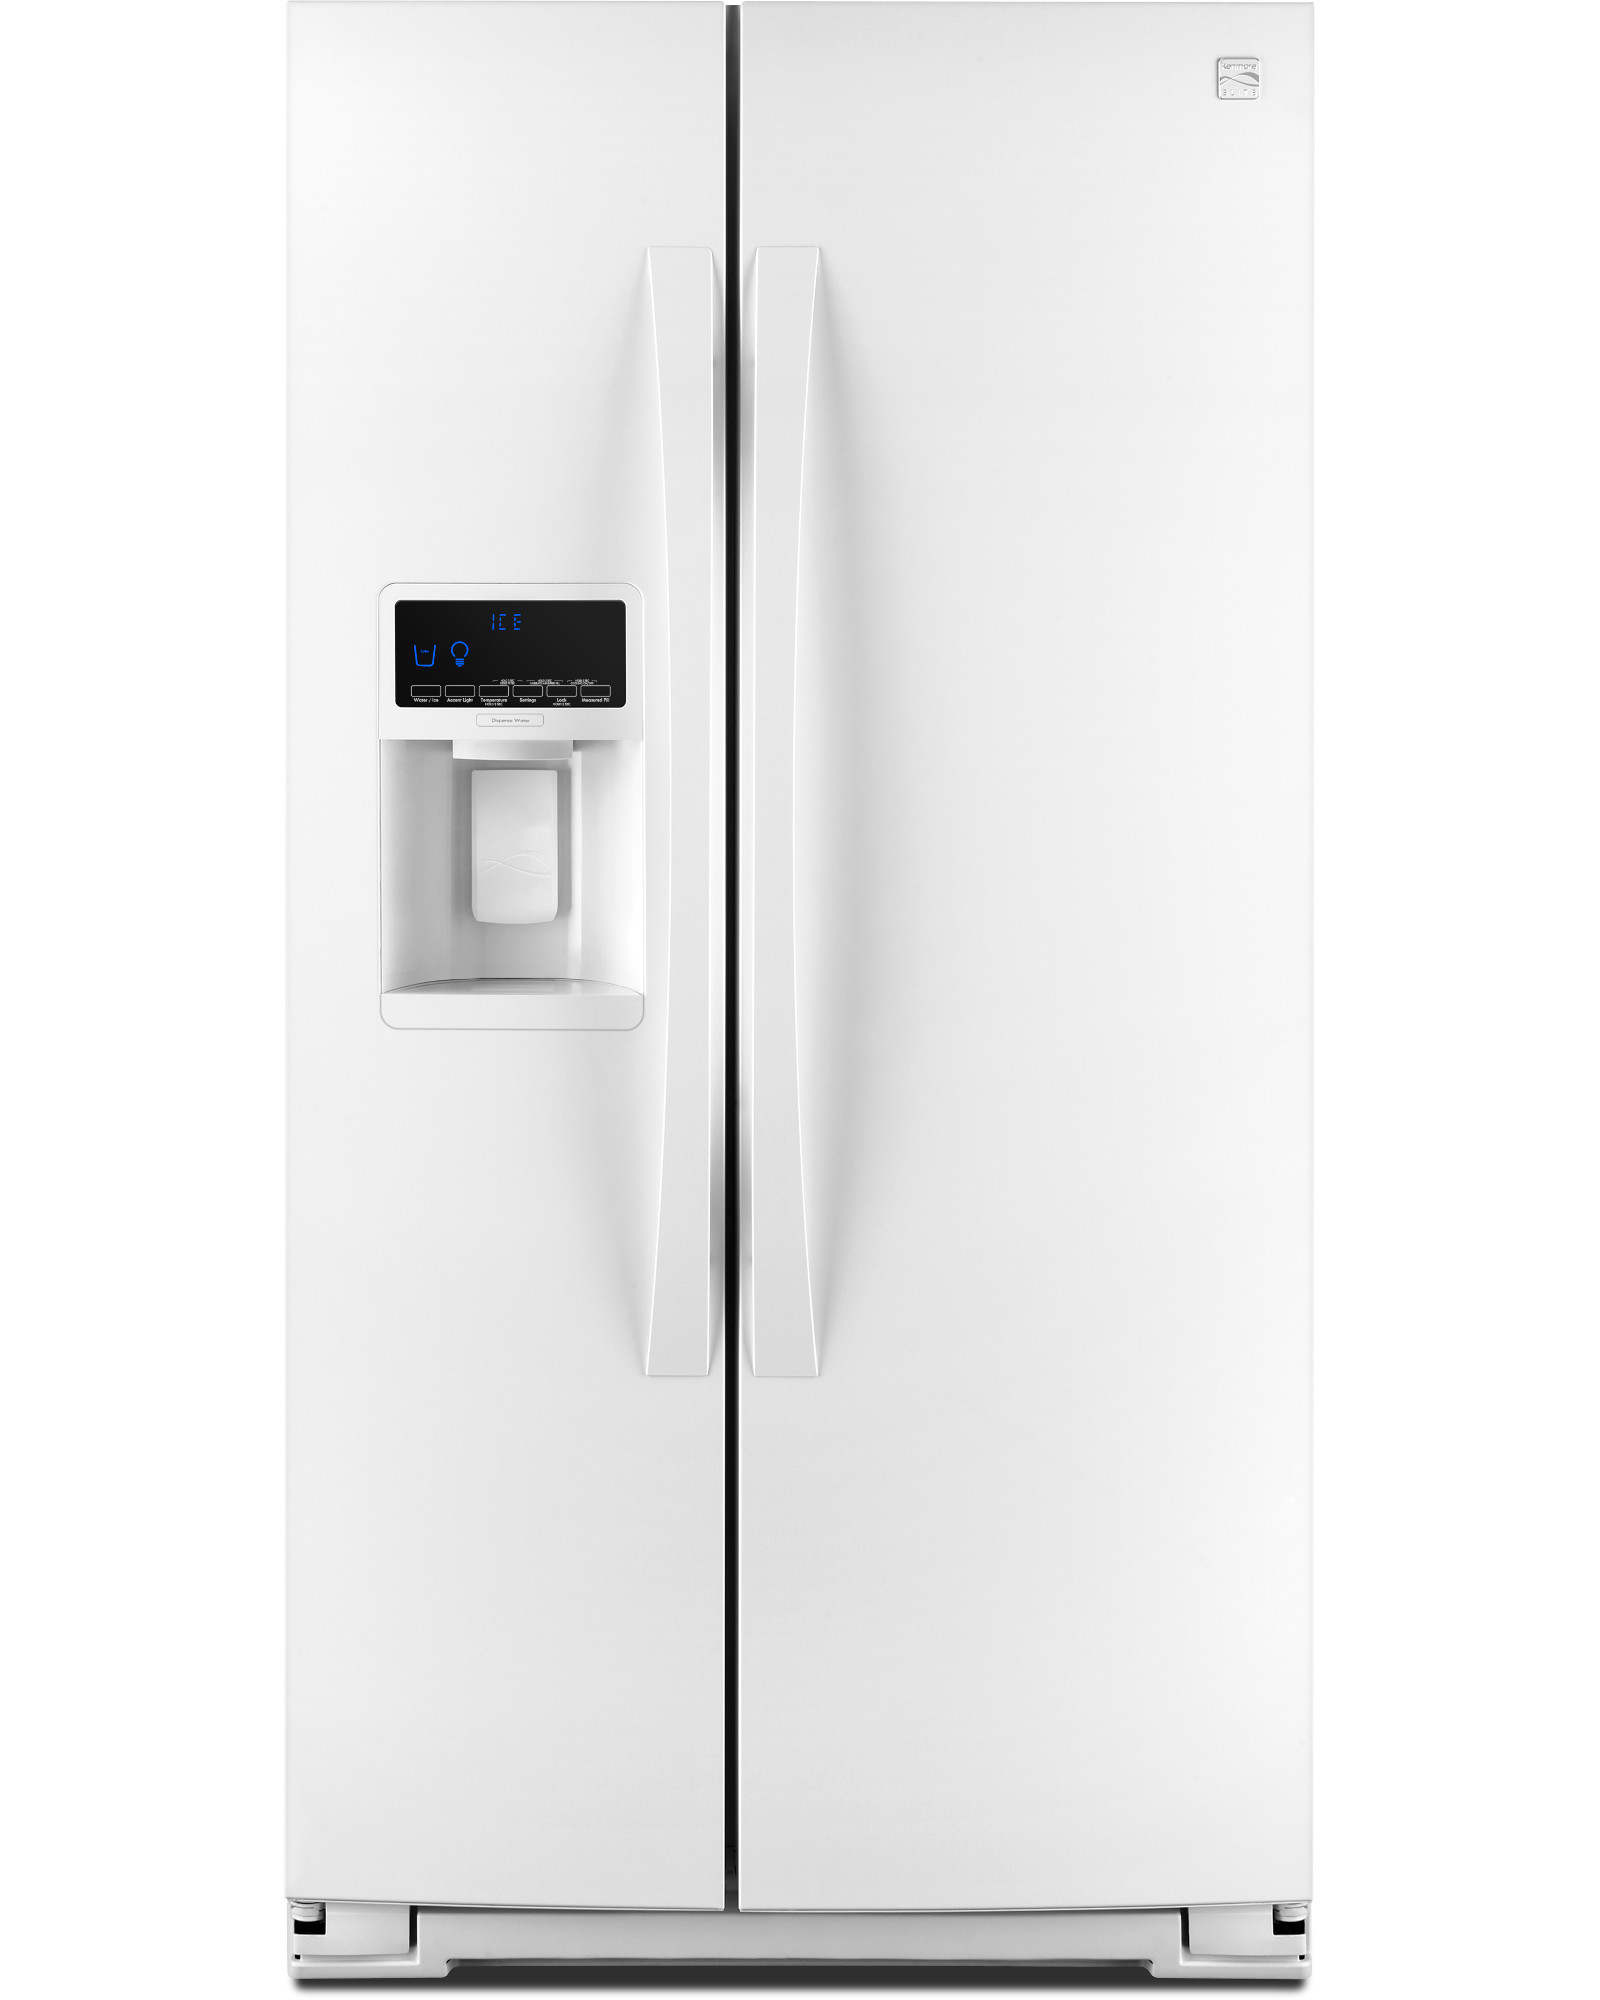 Kenmore-Elite-51712-23-cu-ft-Counter-Depth-Side-by-Side-Refrigerator-w-SmartSense%E2%84%A2-White